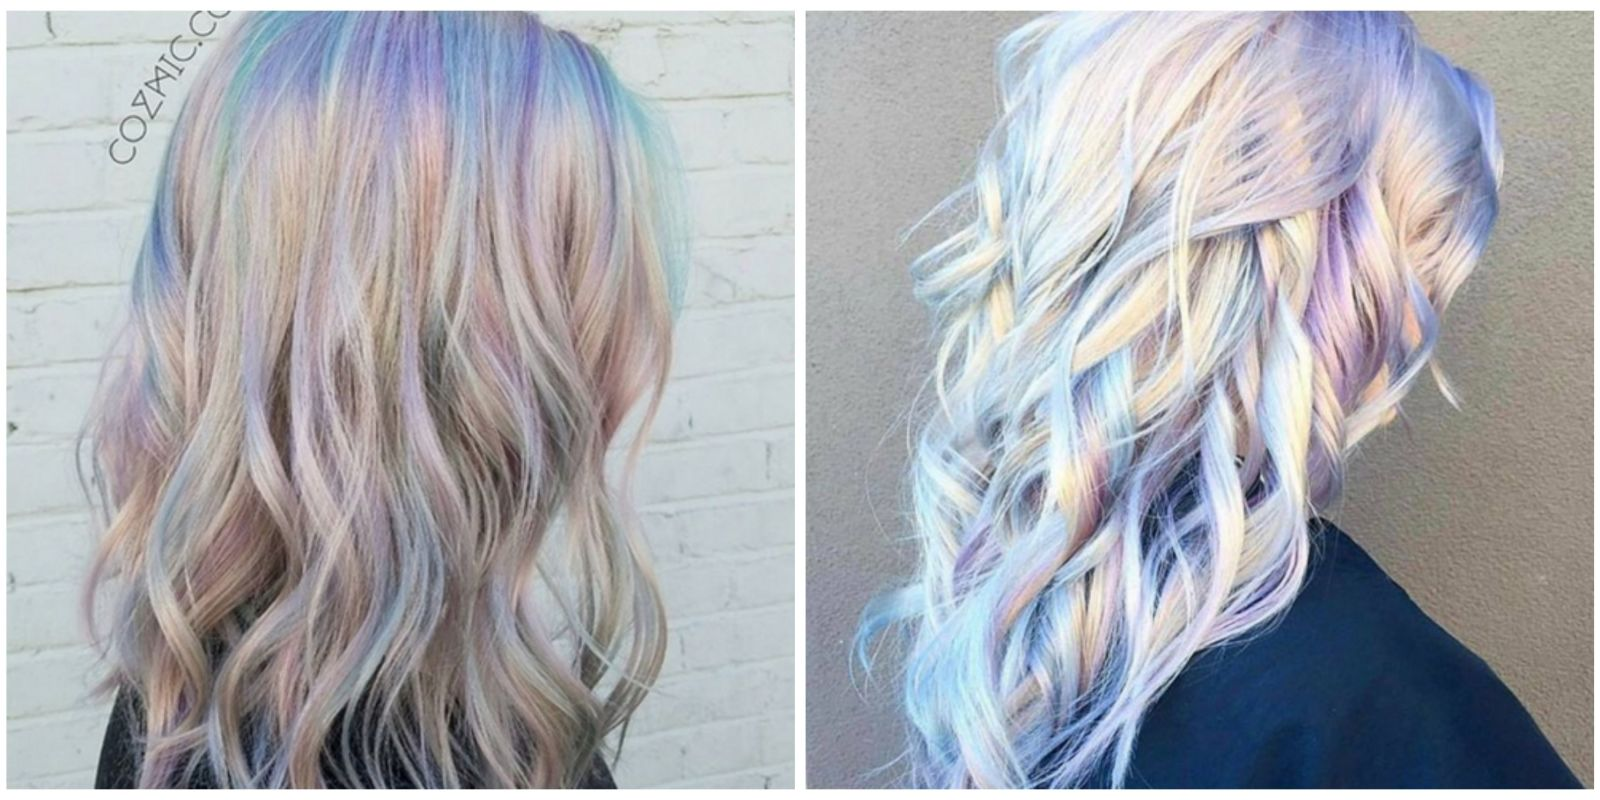 Holographic Hair Is The Latest 2017 Hair Trend